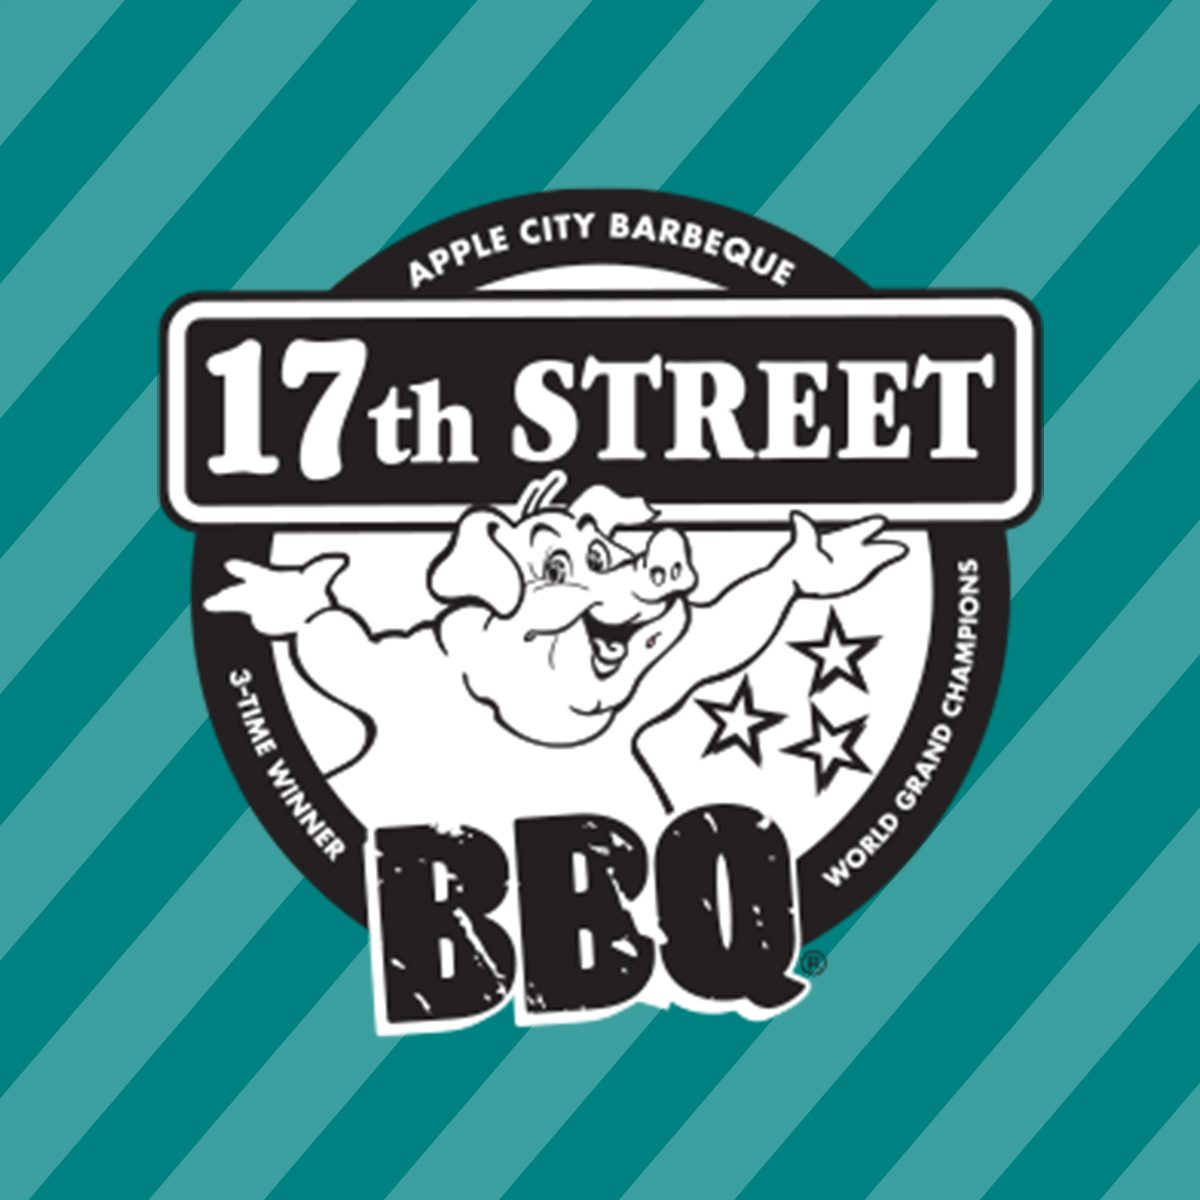 17th Street Barbecue